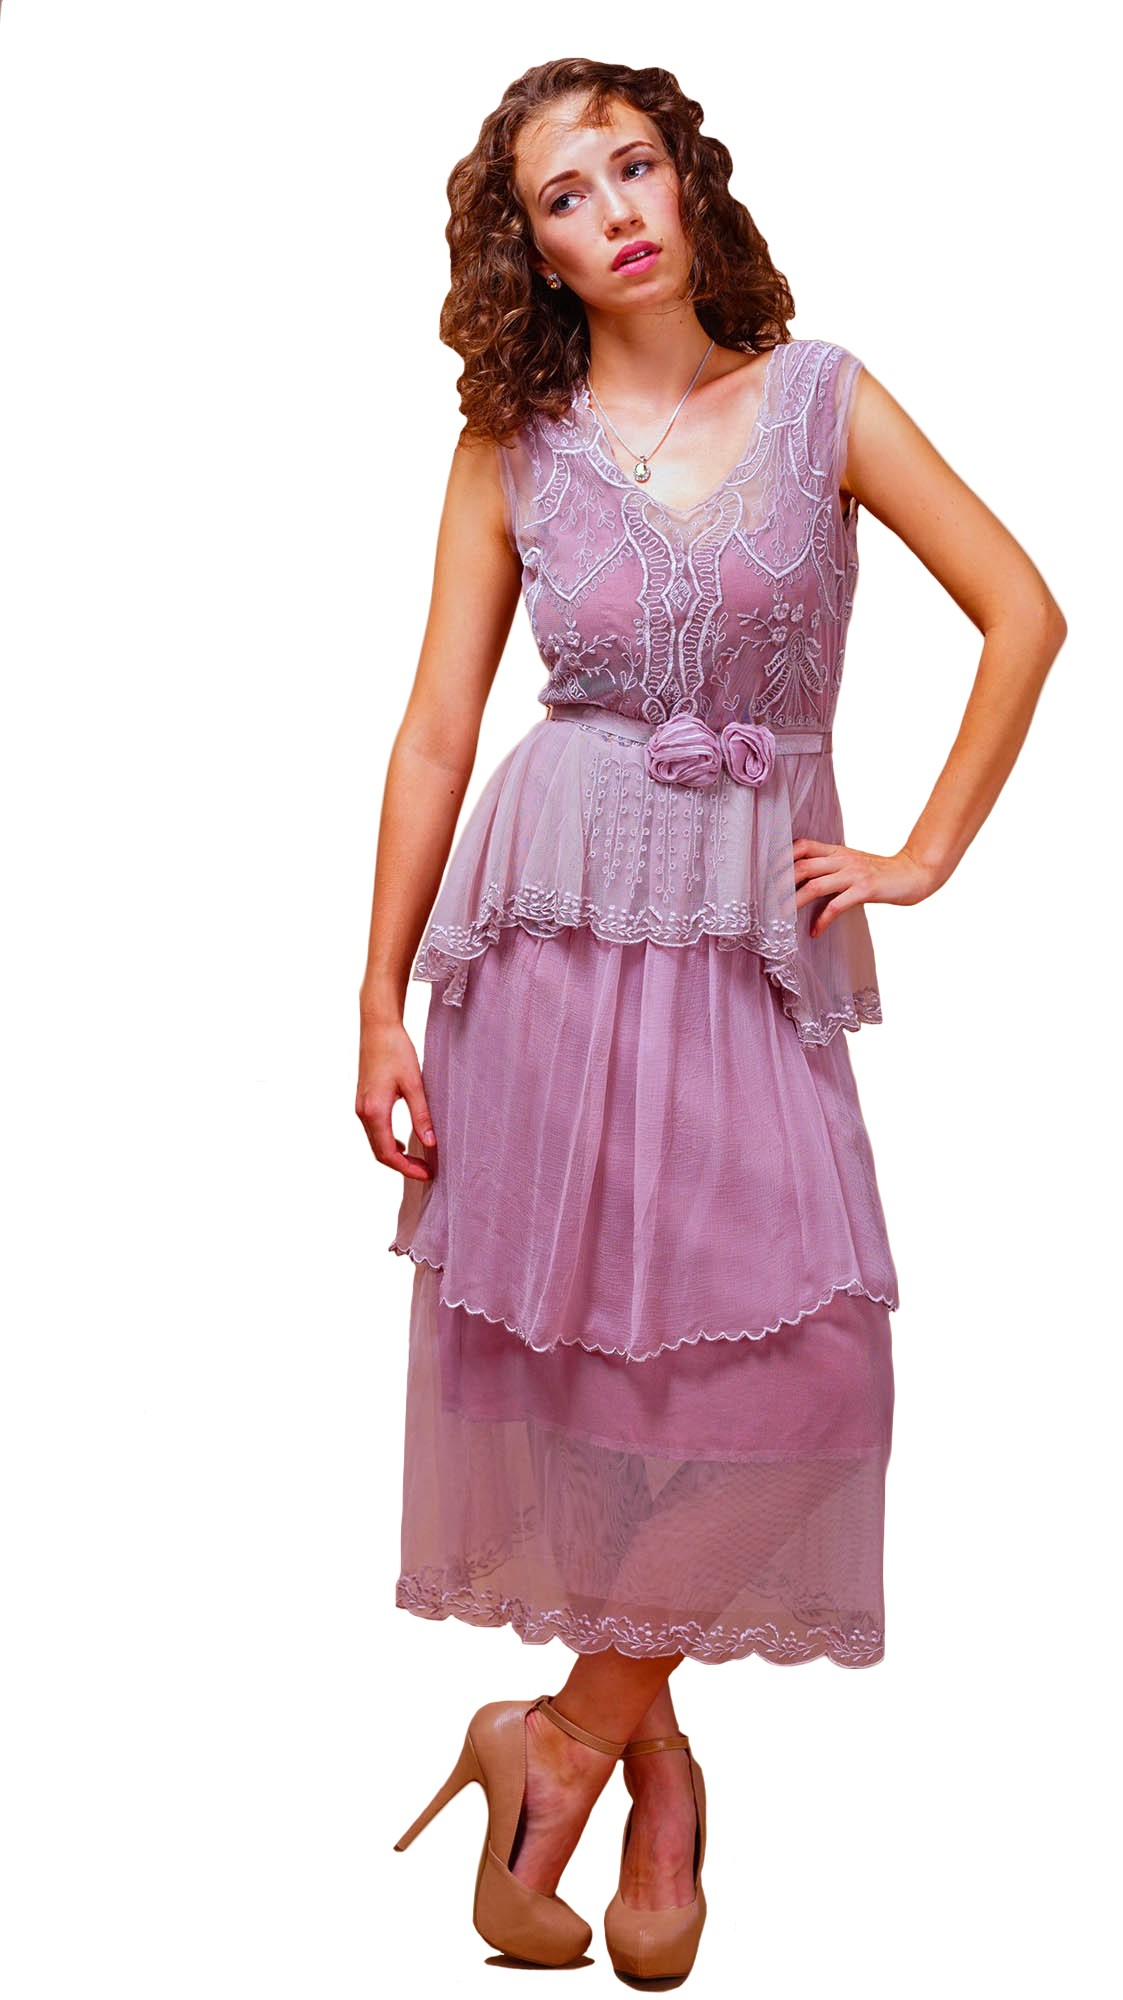 Vintage Inspired Tiered Tea Party Dress in Lavender-Rose by Nataya